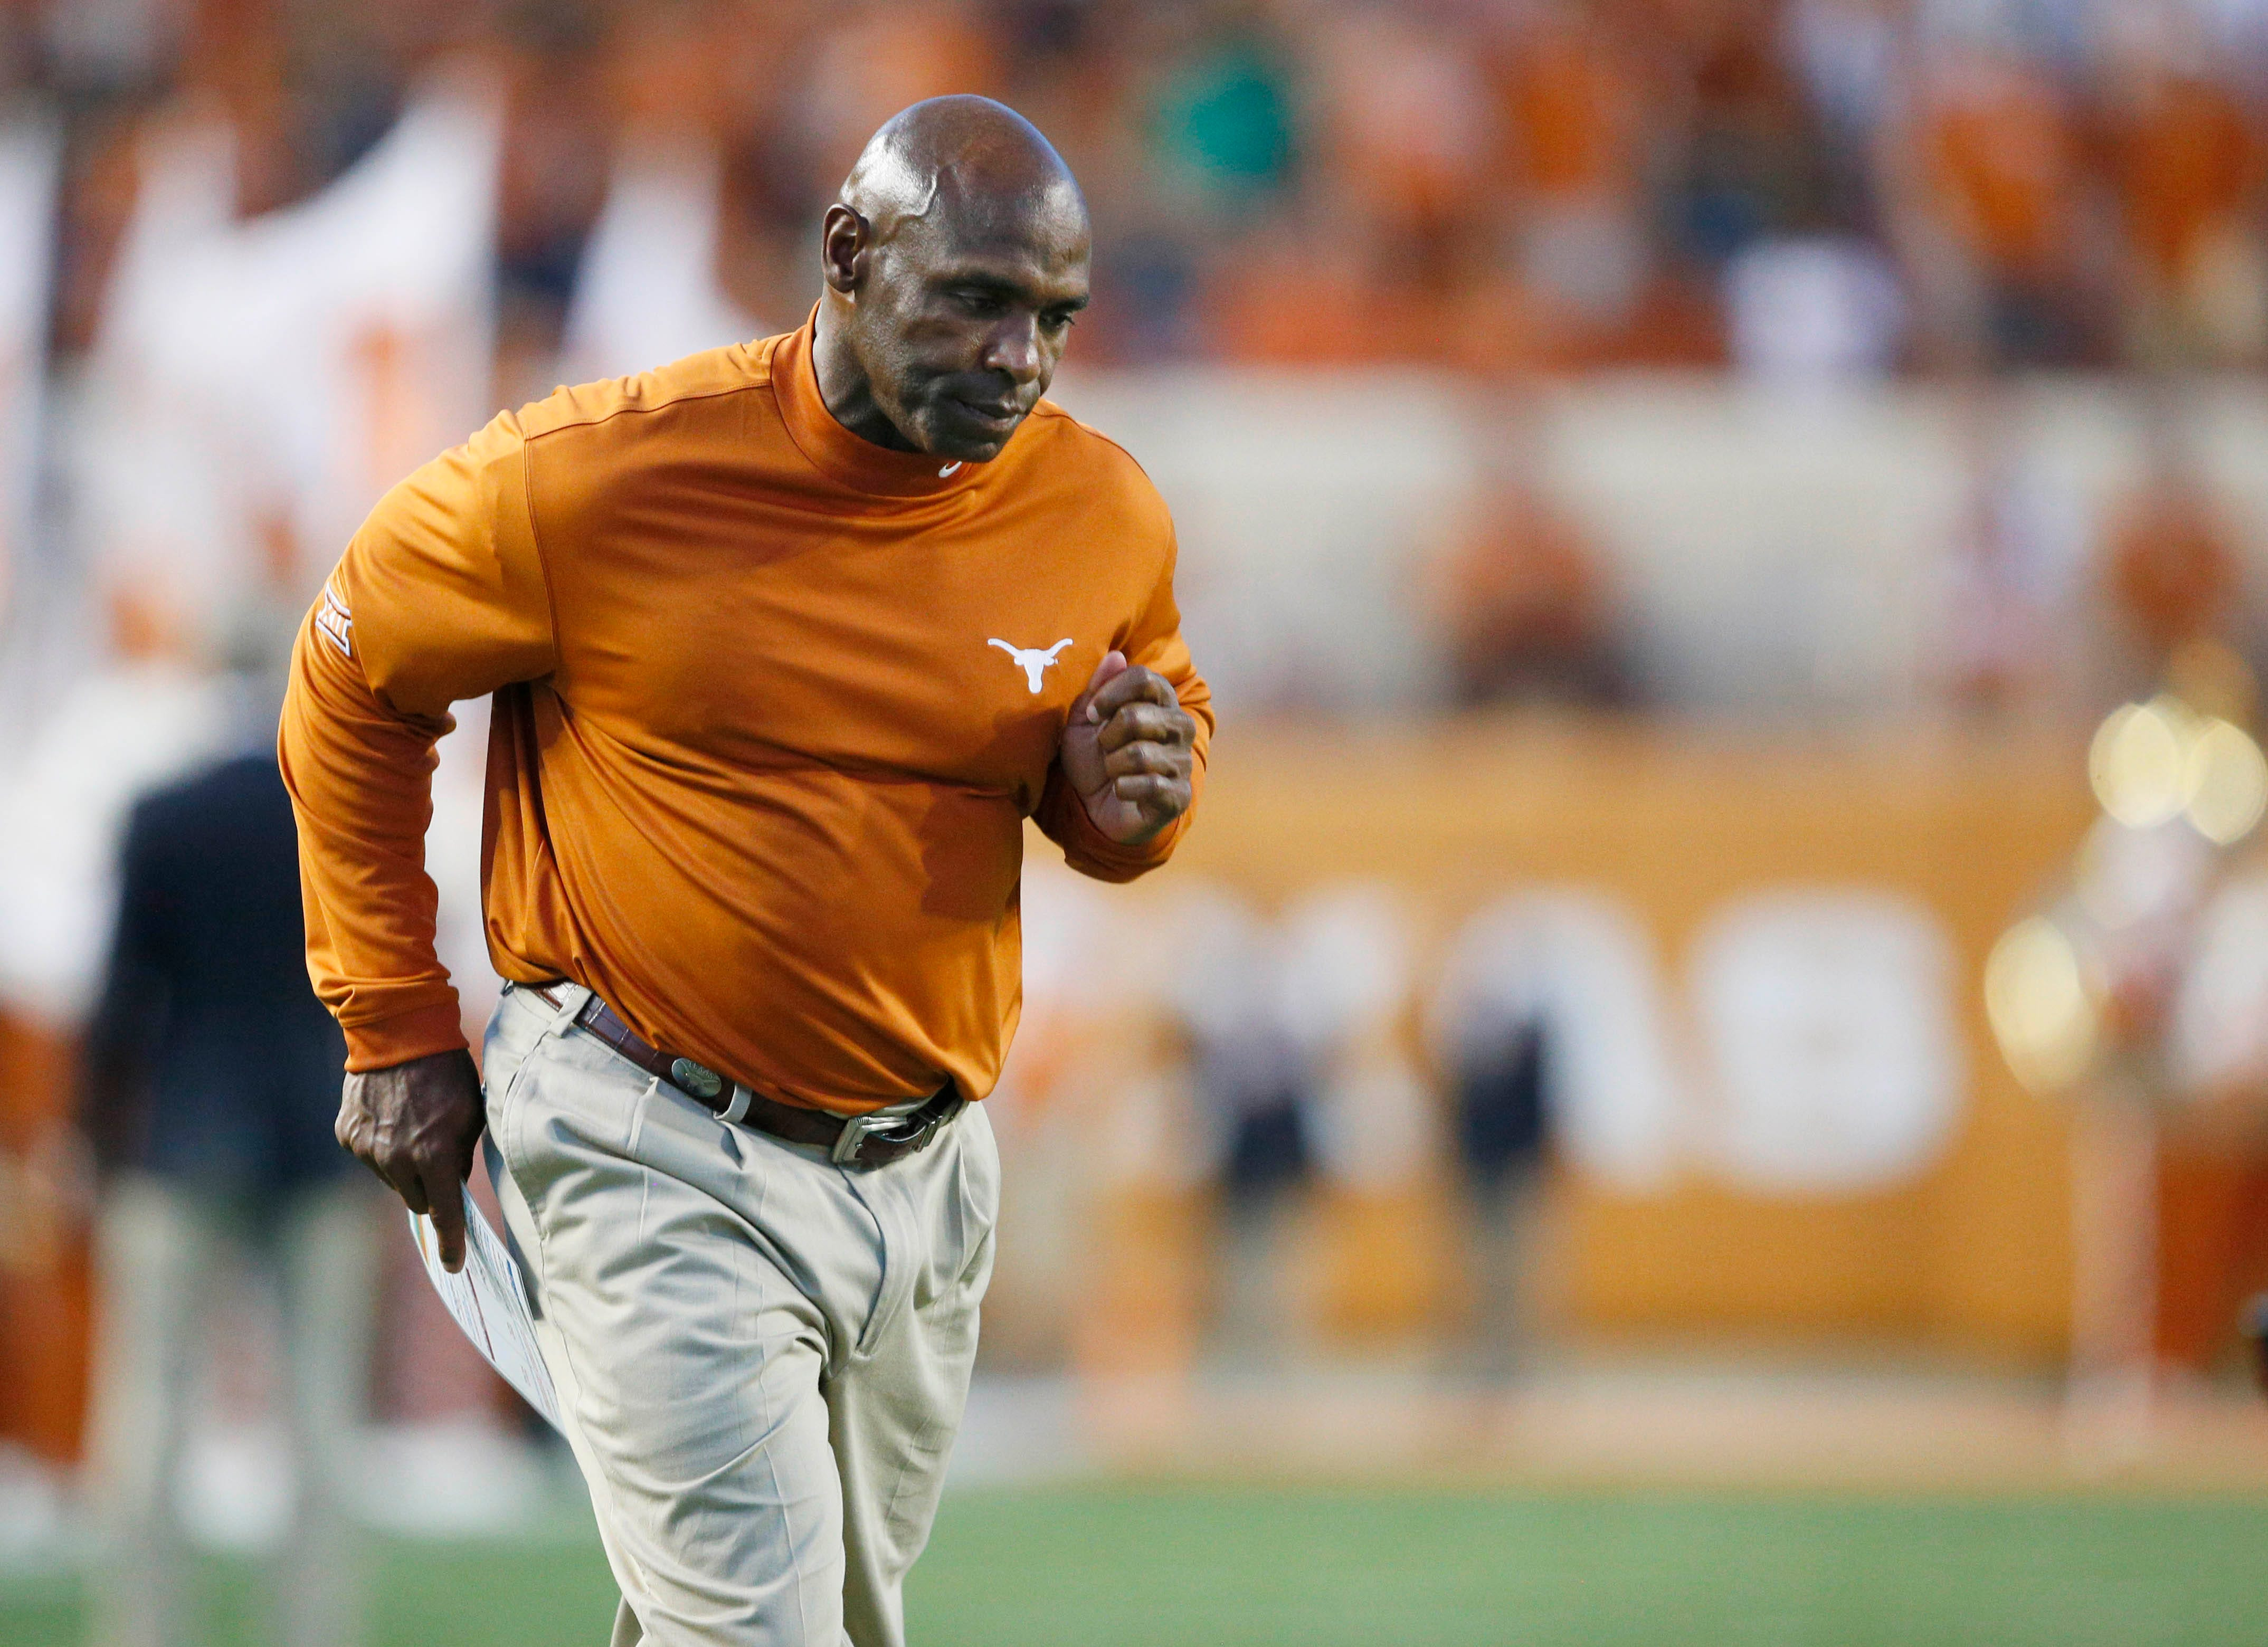 Former Texas Coach Charlie Strong Is Headed To South Florida